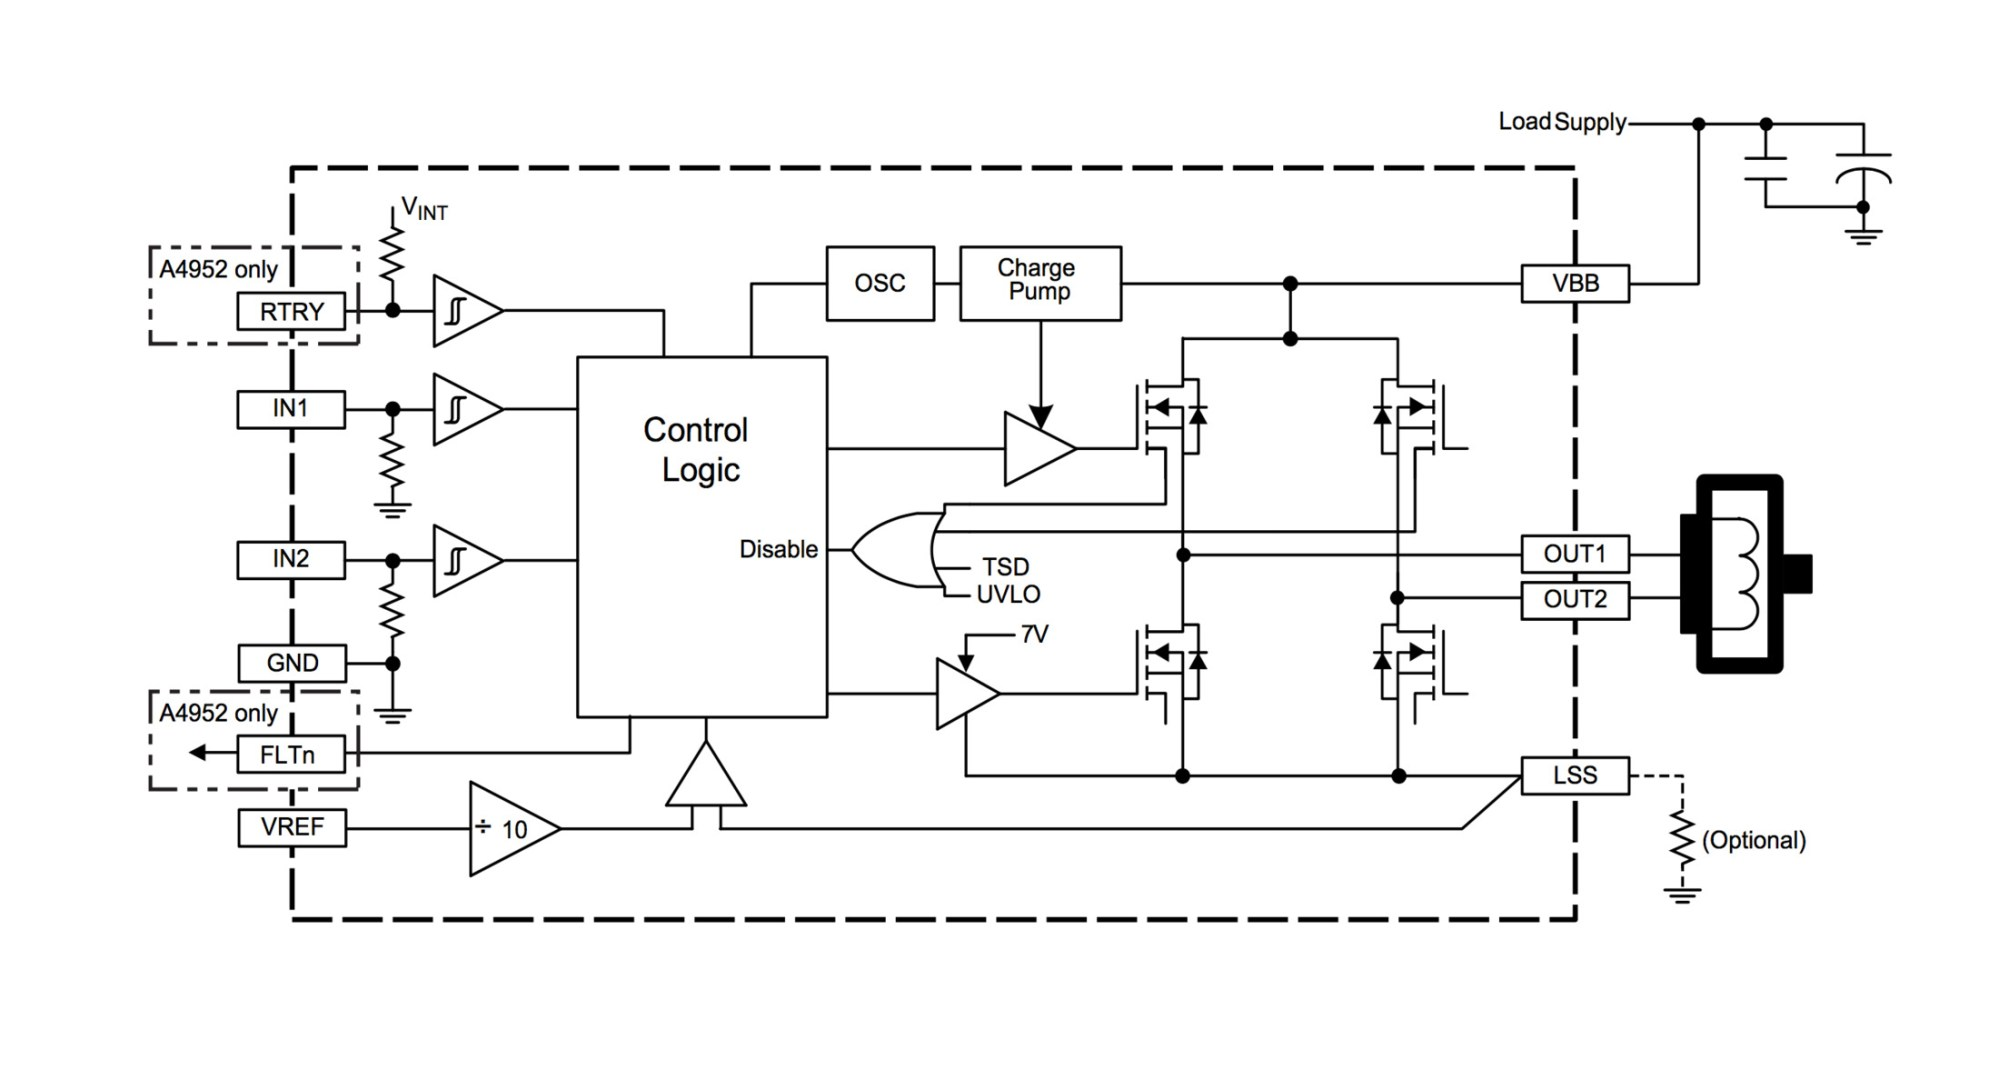 hight resolution of in order to use pwm current control page 7 of the a4953 datasheet a low value resistor is placed between the lss pin and ground for current sensing